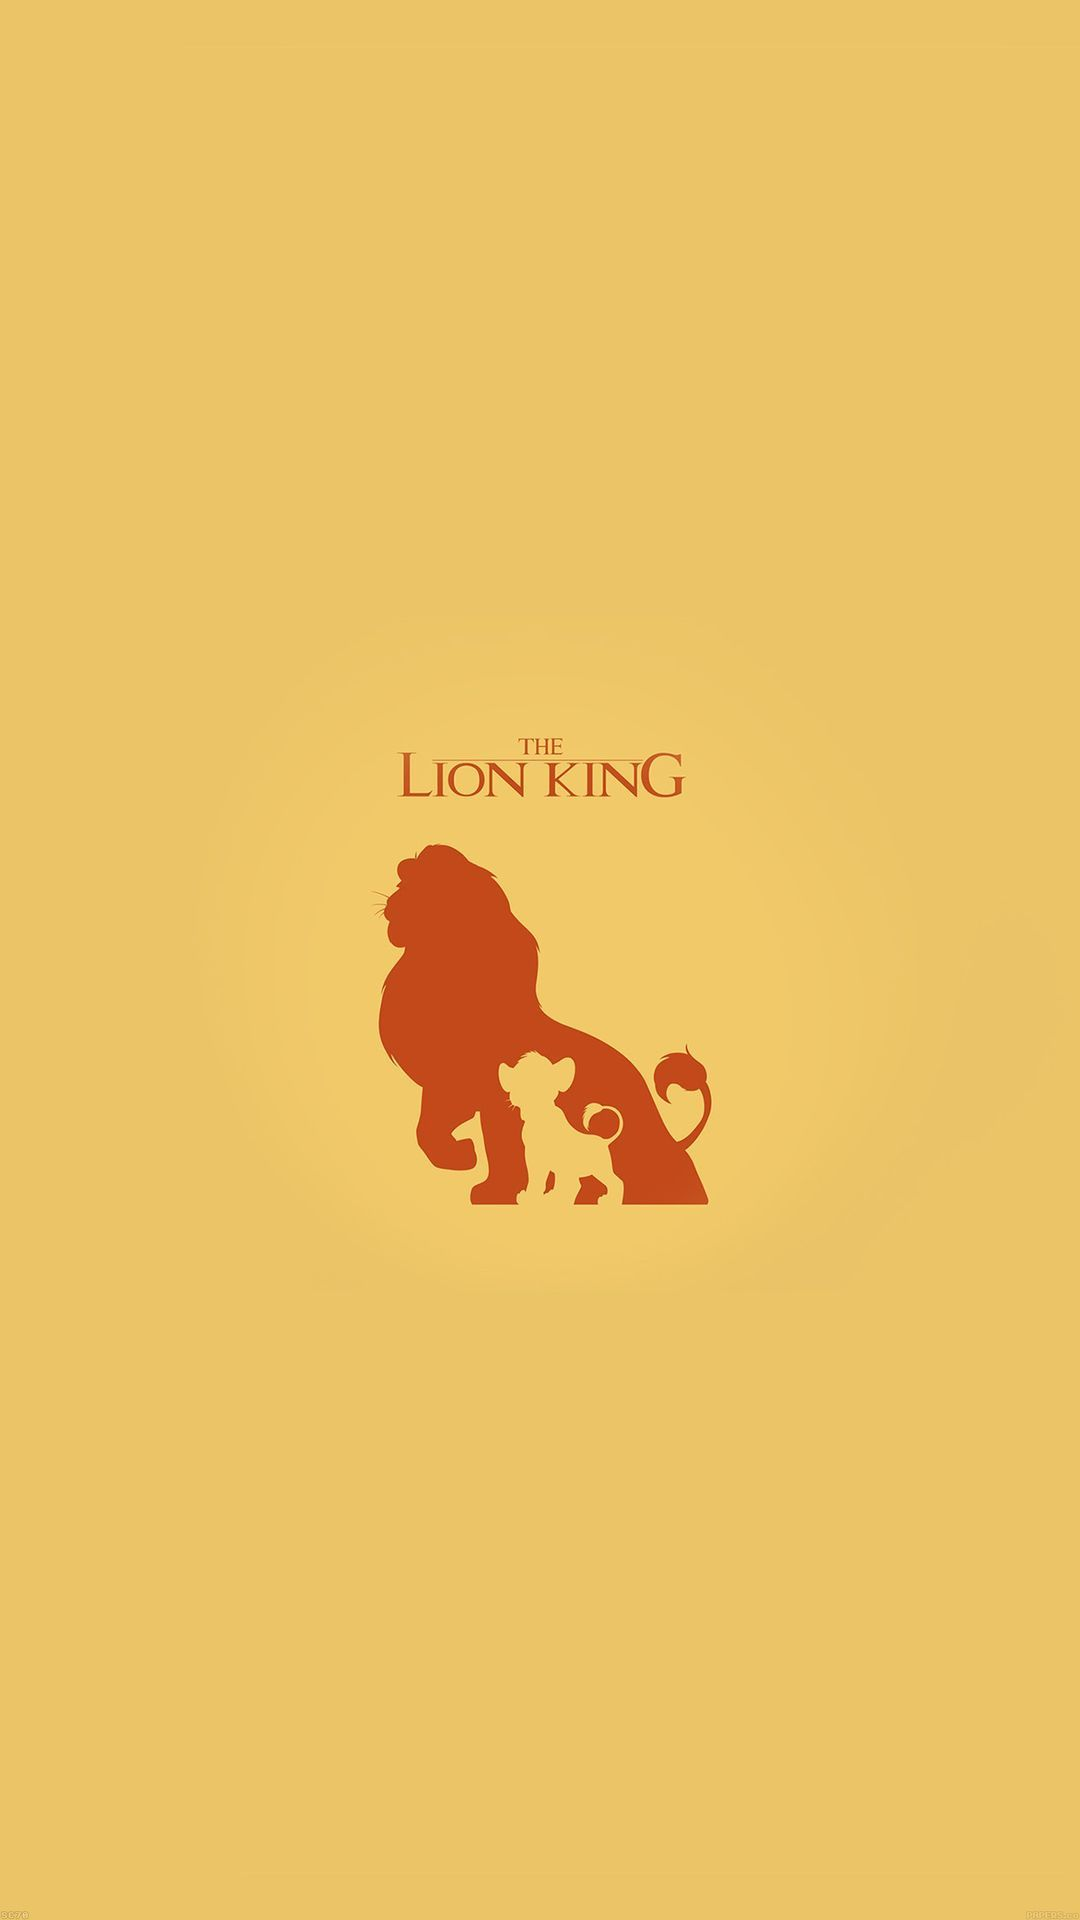 Download The Lion King Disney Minimal Iphone Wallpapers For Disney